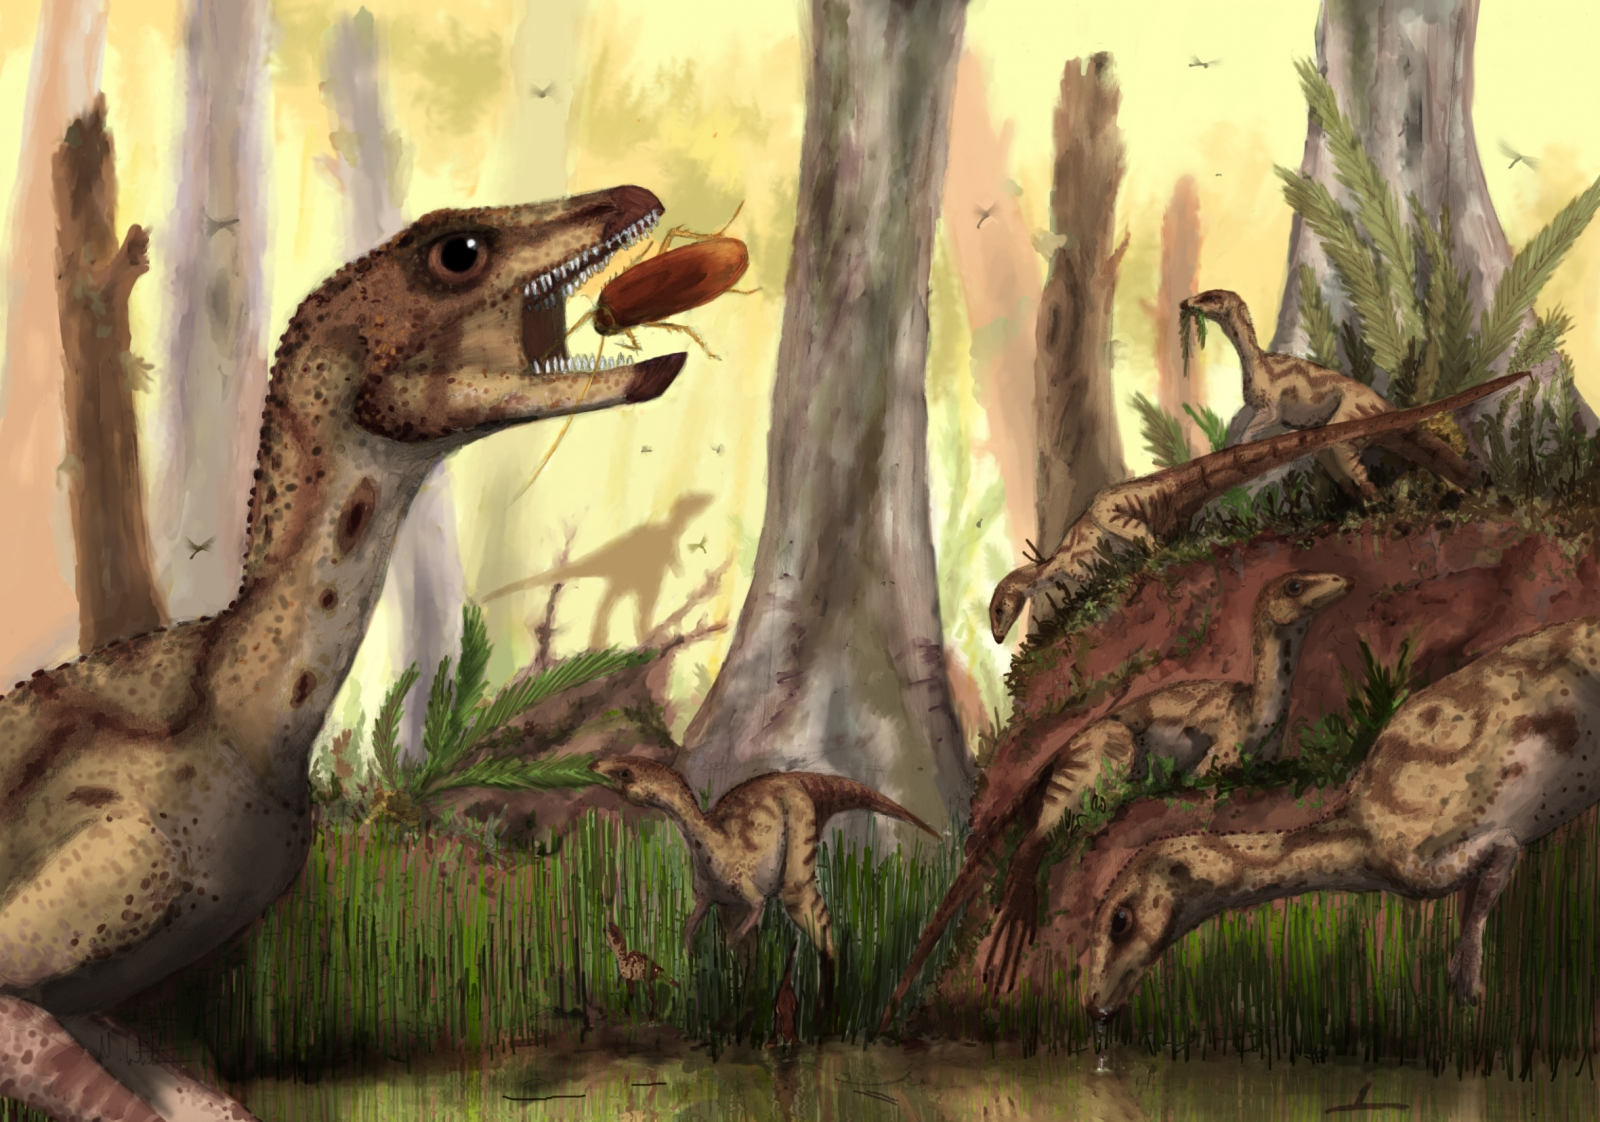 Laquintasaura Venezuelae: Bird-Hipped Dinosaur is First to Be Discovered in Venezuela